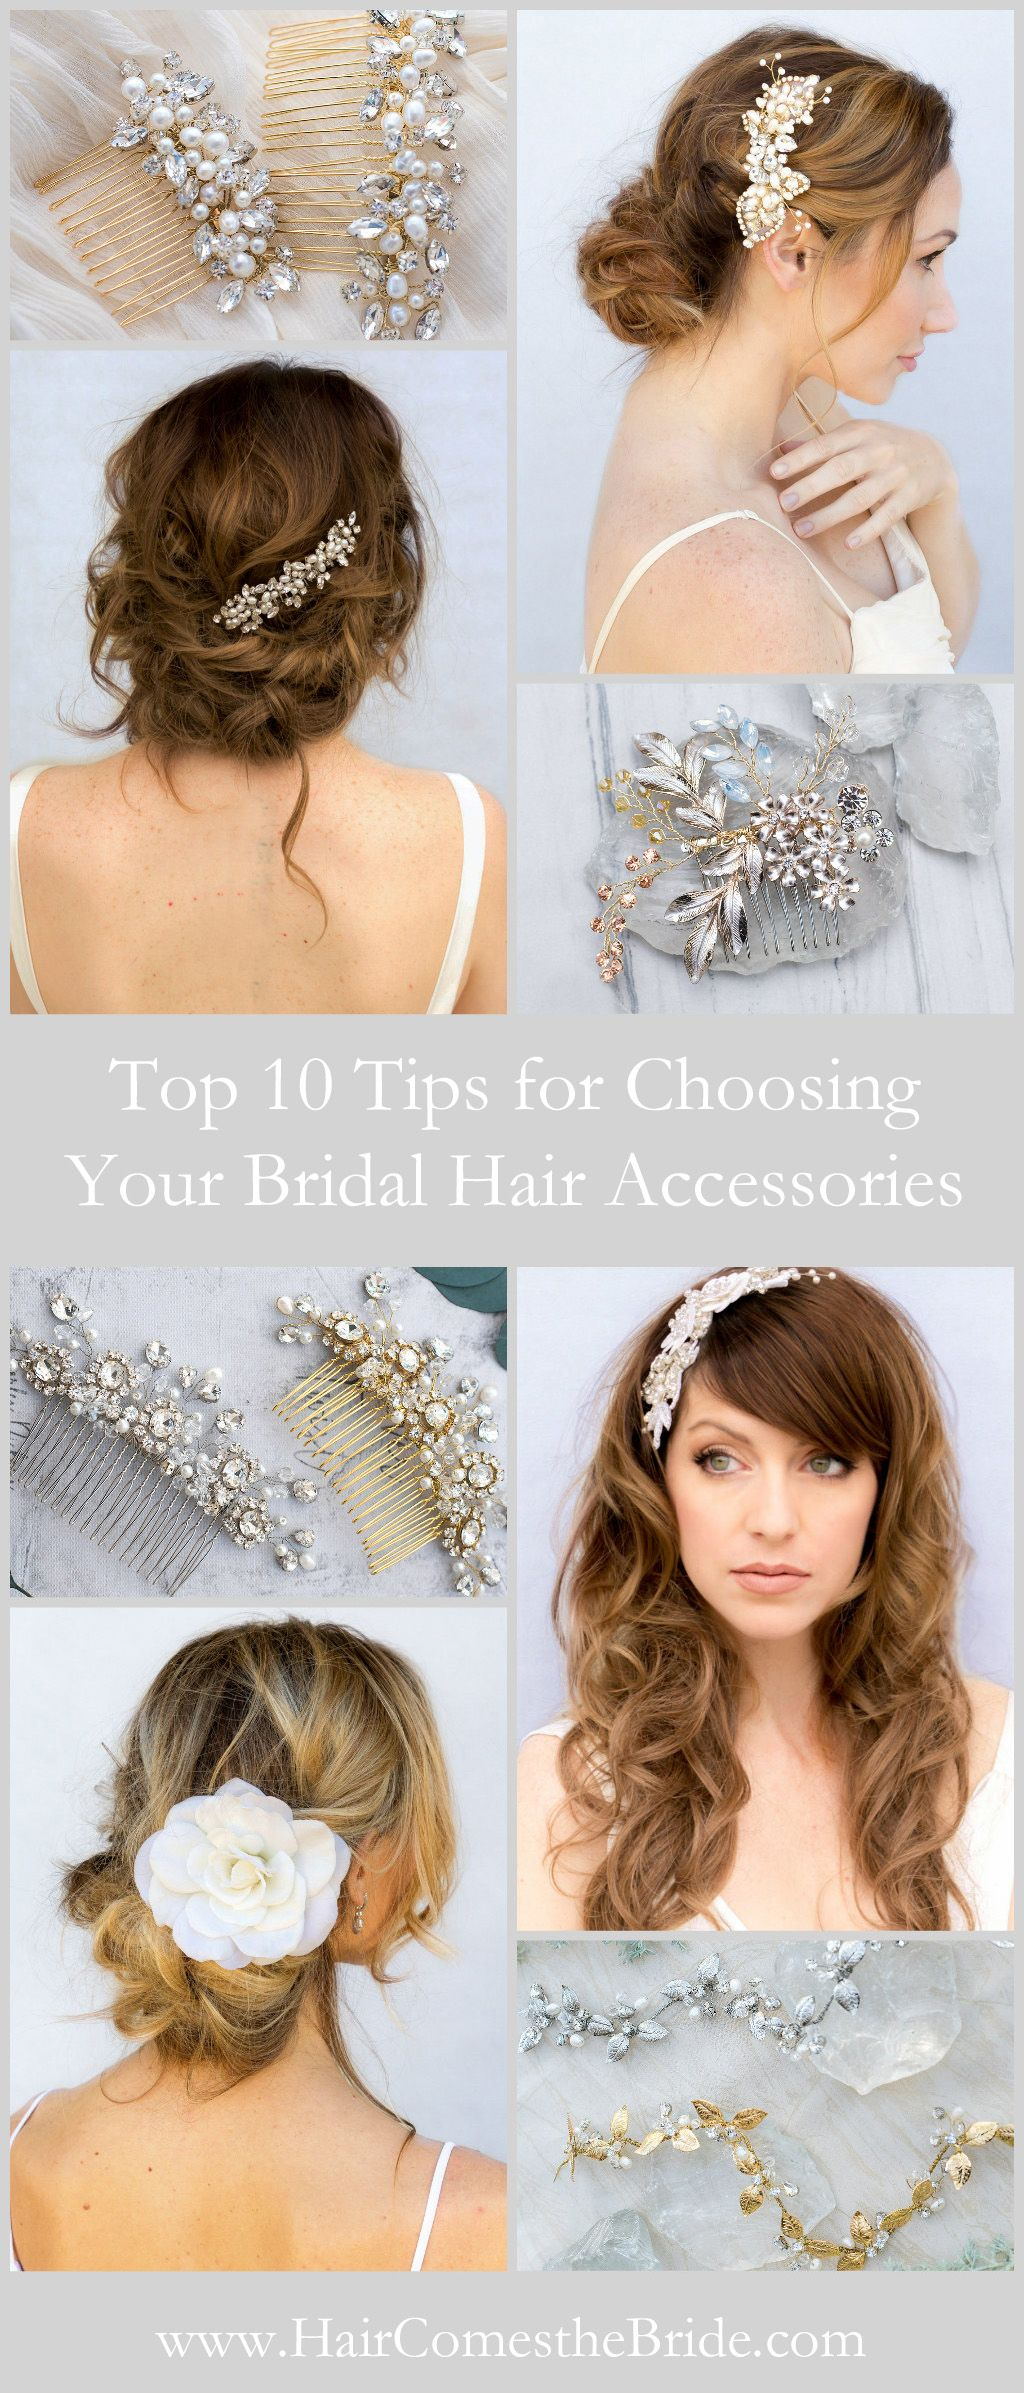 Top 10 Tips for Choosing Your Bridal Hair Accessories | Hair ...